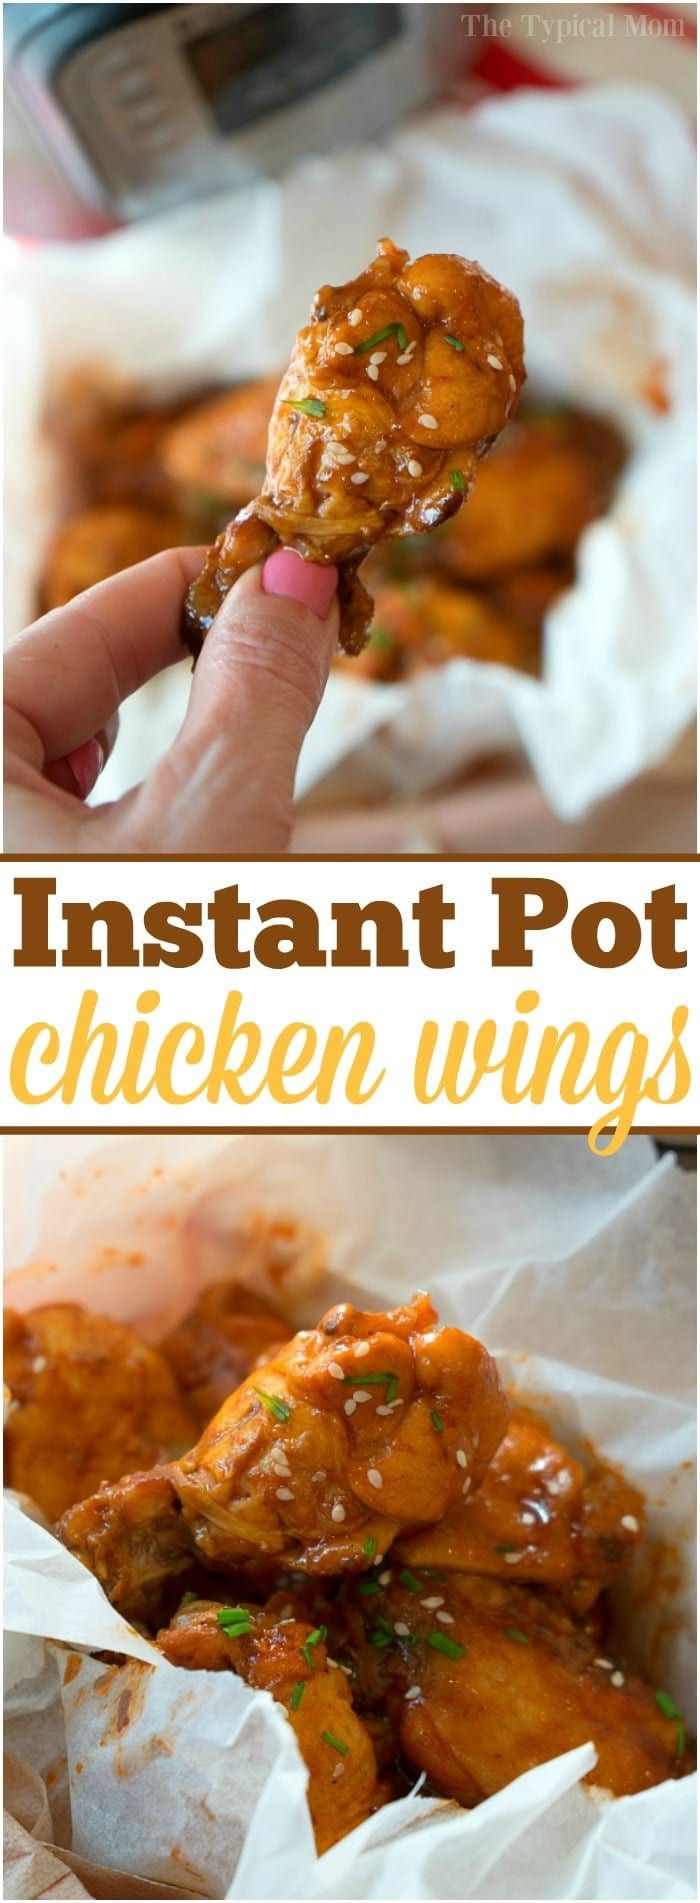 This is how you make tender and delicious pressure cooker frozen chicken wings! Makes a great appetizer or dinner in your Instant Pot using your favorite barbecue sauce. Wings are the best finger food we say and with this trick you can make them often. From freezer to dinner in less than 30 minutes! #instantpot #pressurecooker #chicken #wings #frozen #meat #time #cook